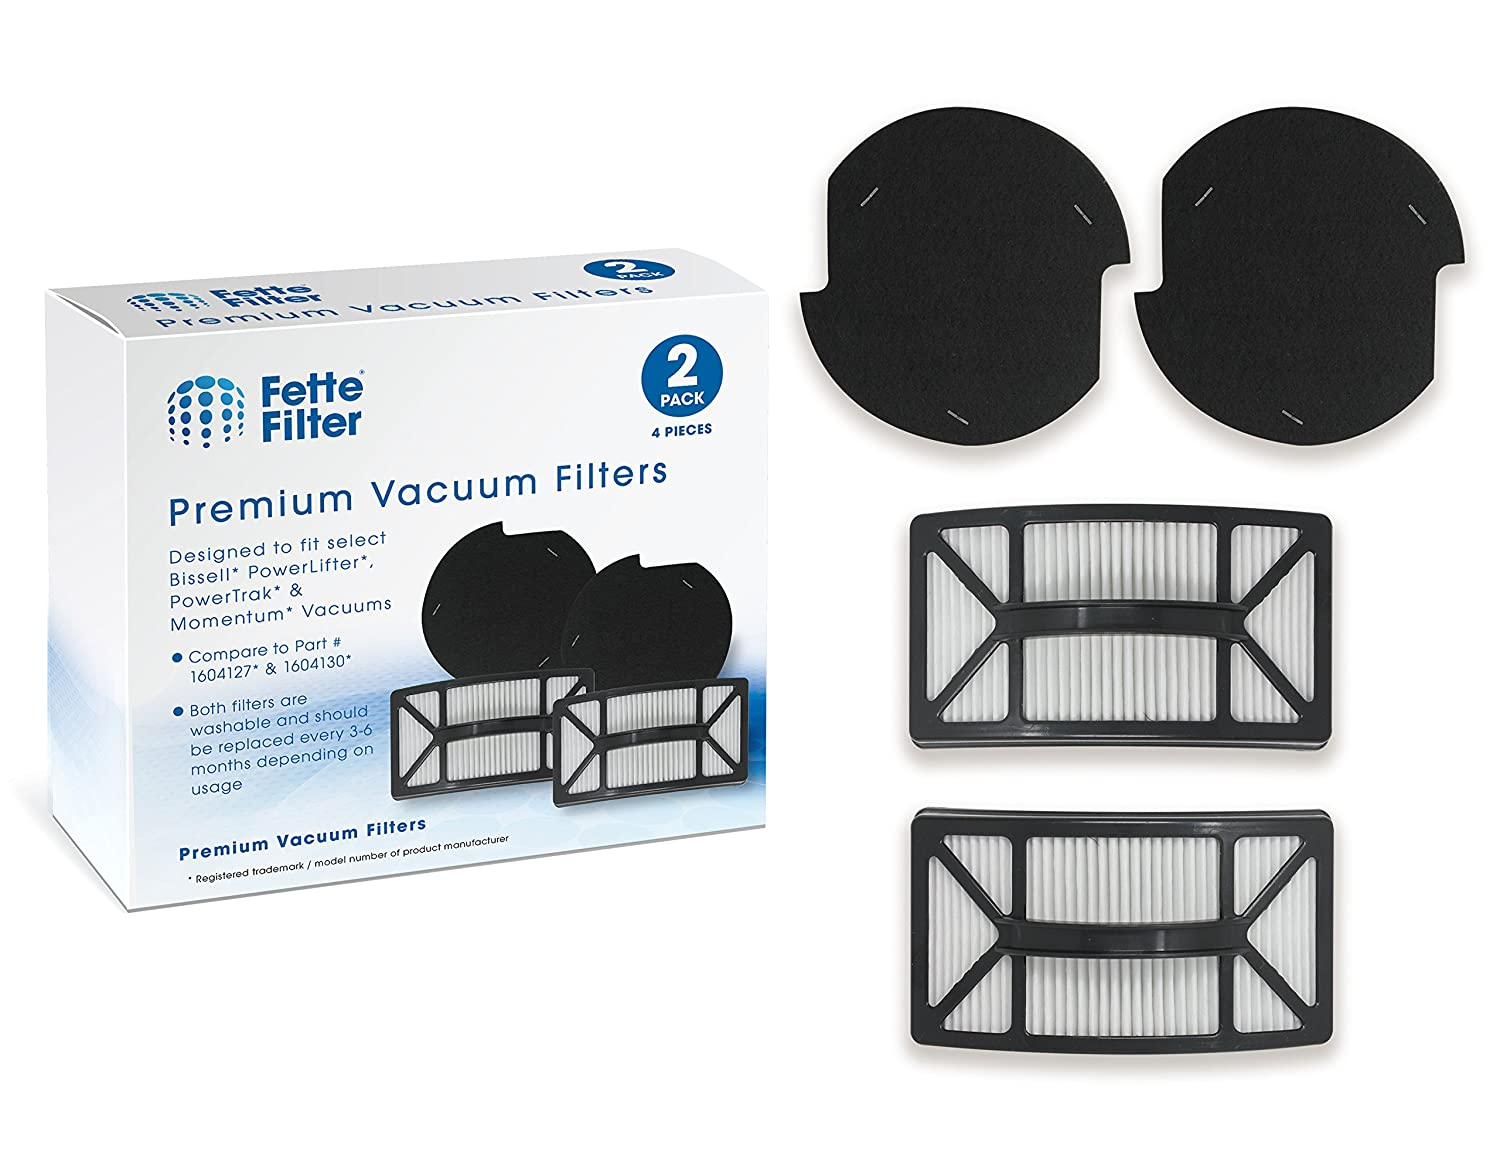 Fette Filter - Filter Kit Compatible with Bissell Powerlifter PowerTrak Pet Vacuum. Contains 2 Pre Motor 1604127 Filters and 2 Post Motor 1604130 Filters.